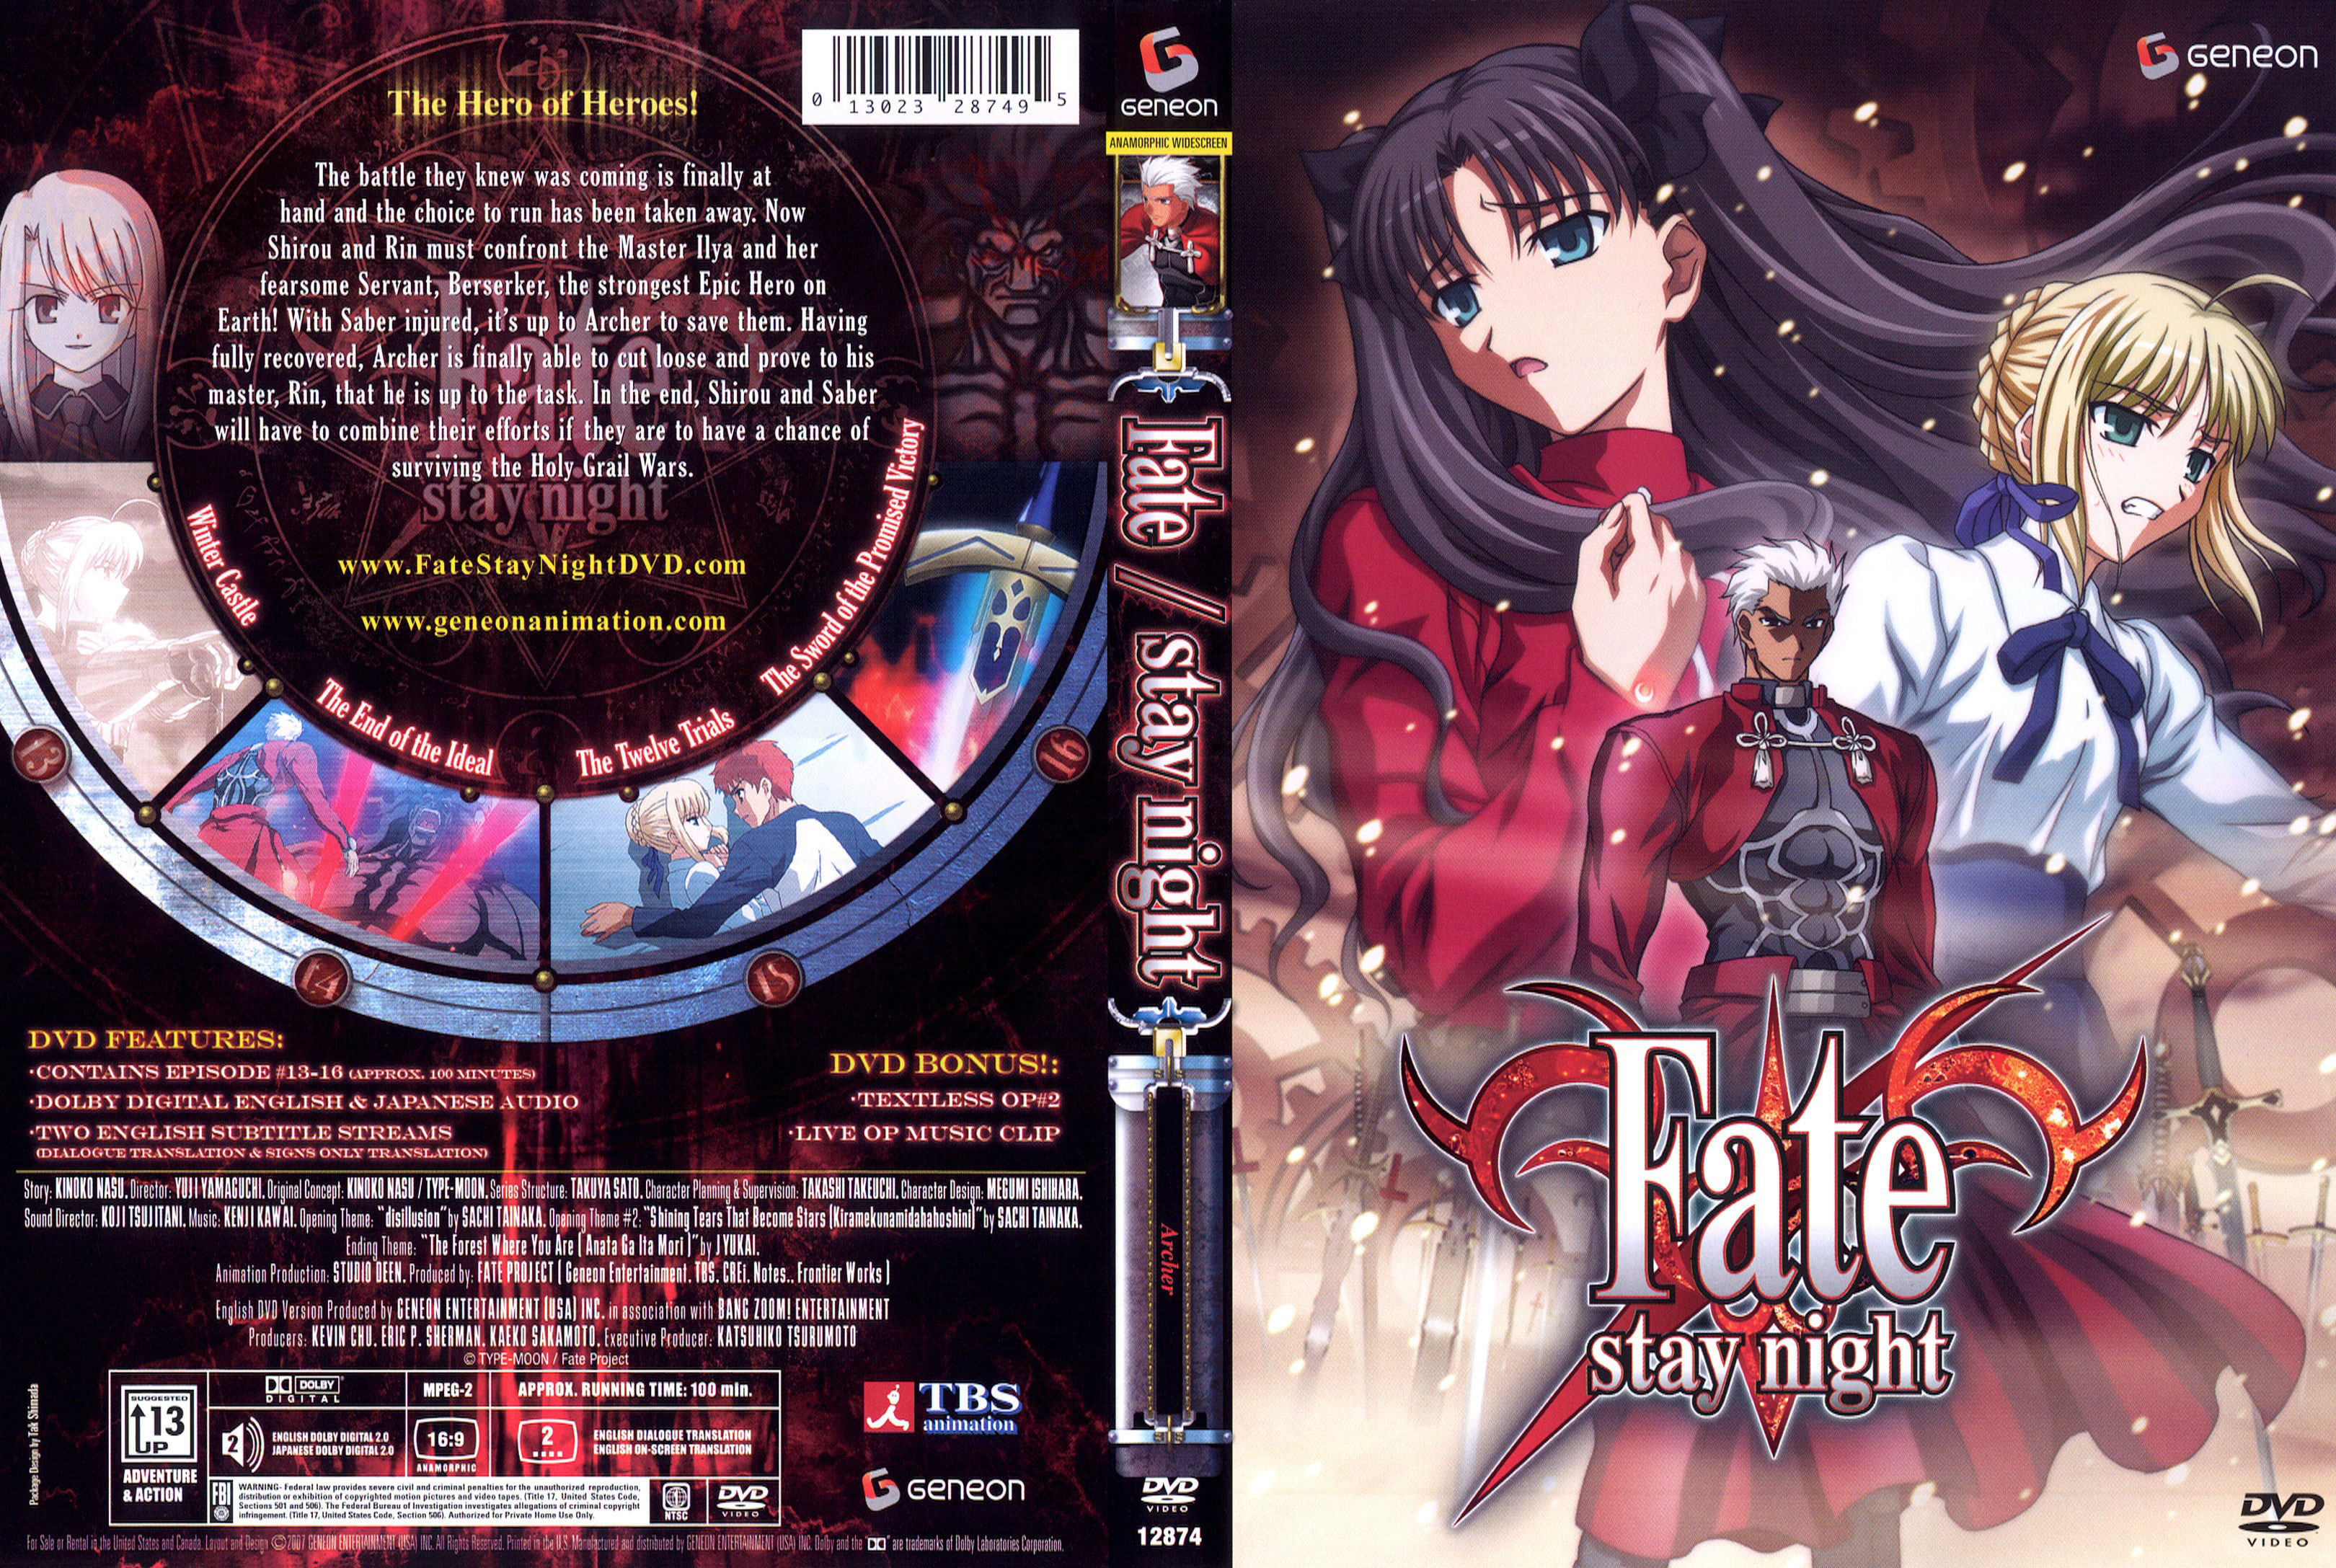 fate stay night dvd: